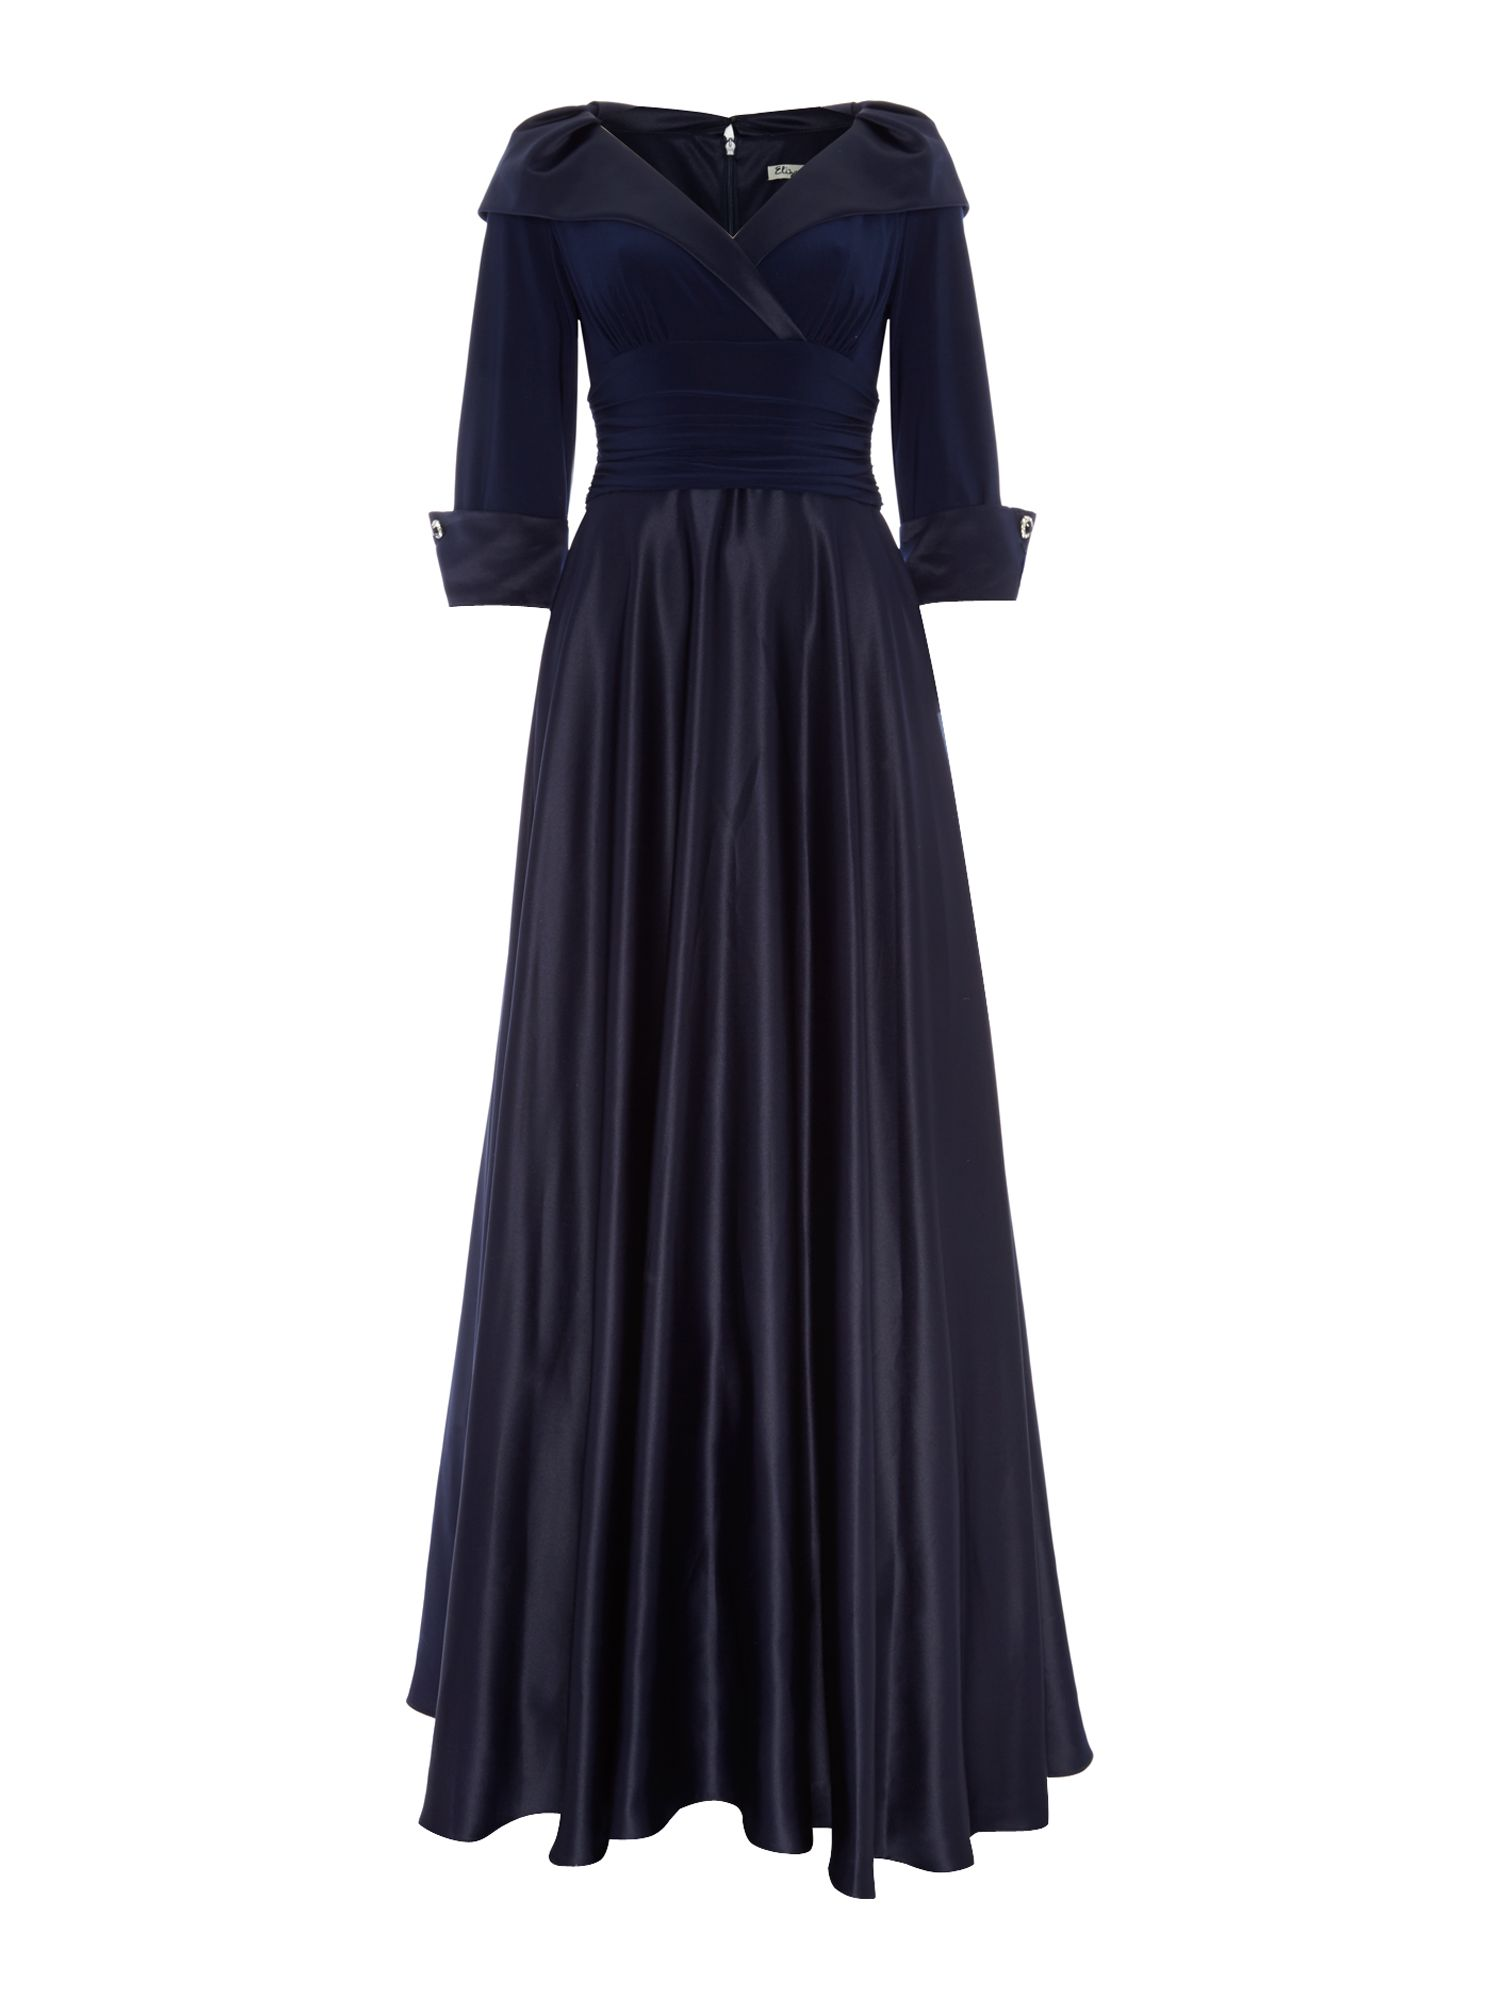 Portrait collar 3/4 sleeve maxi dress